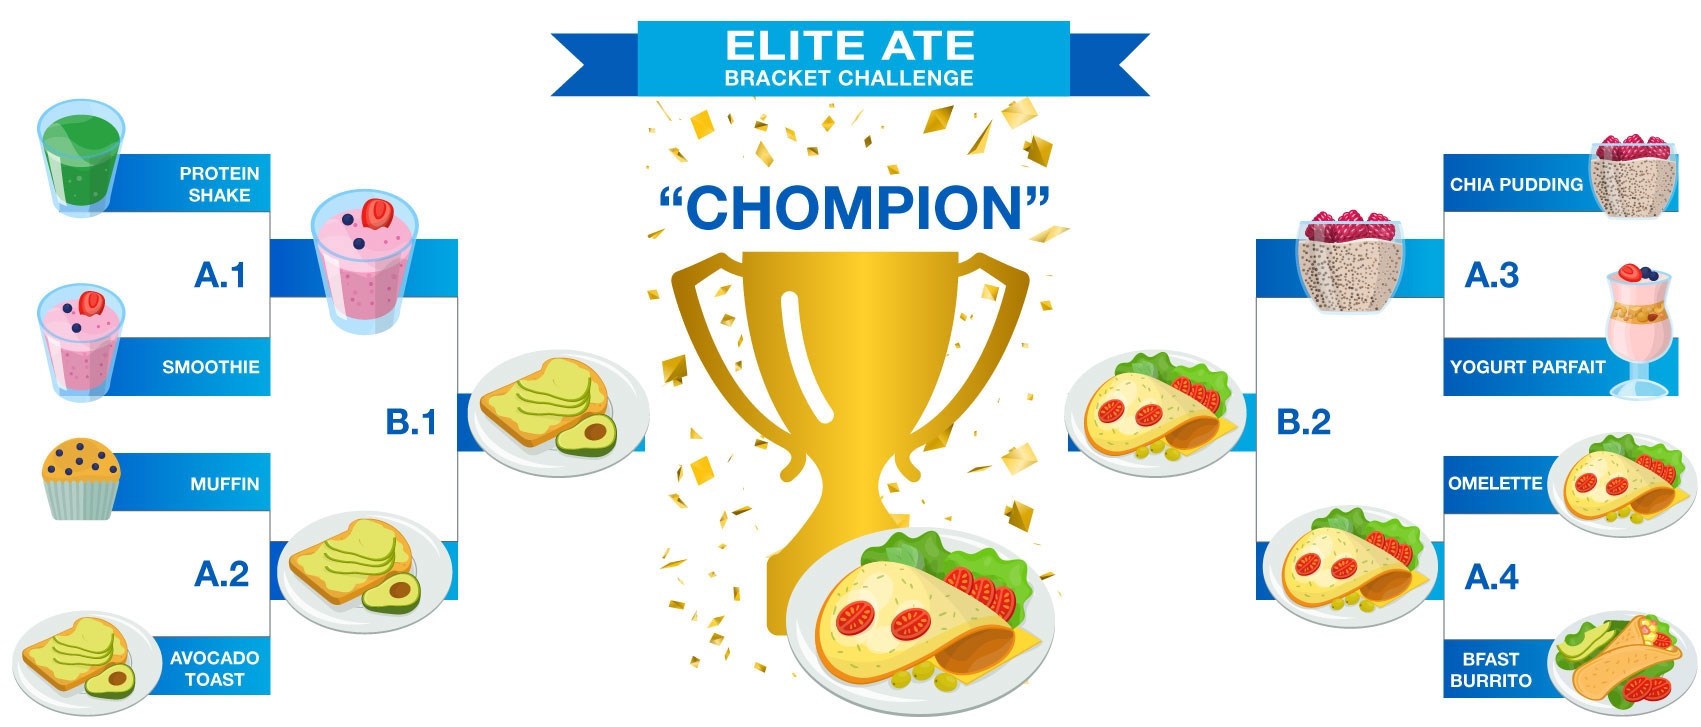 EliteAteChompion